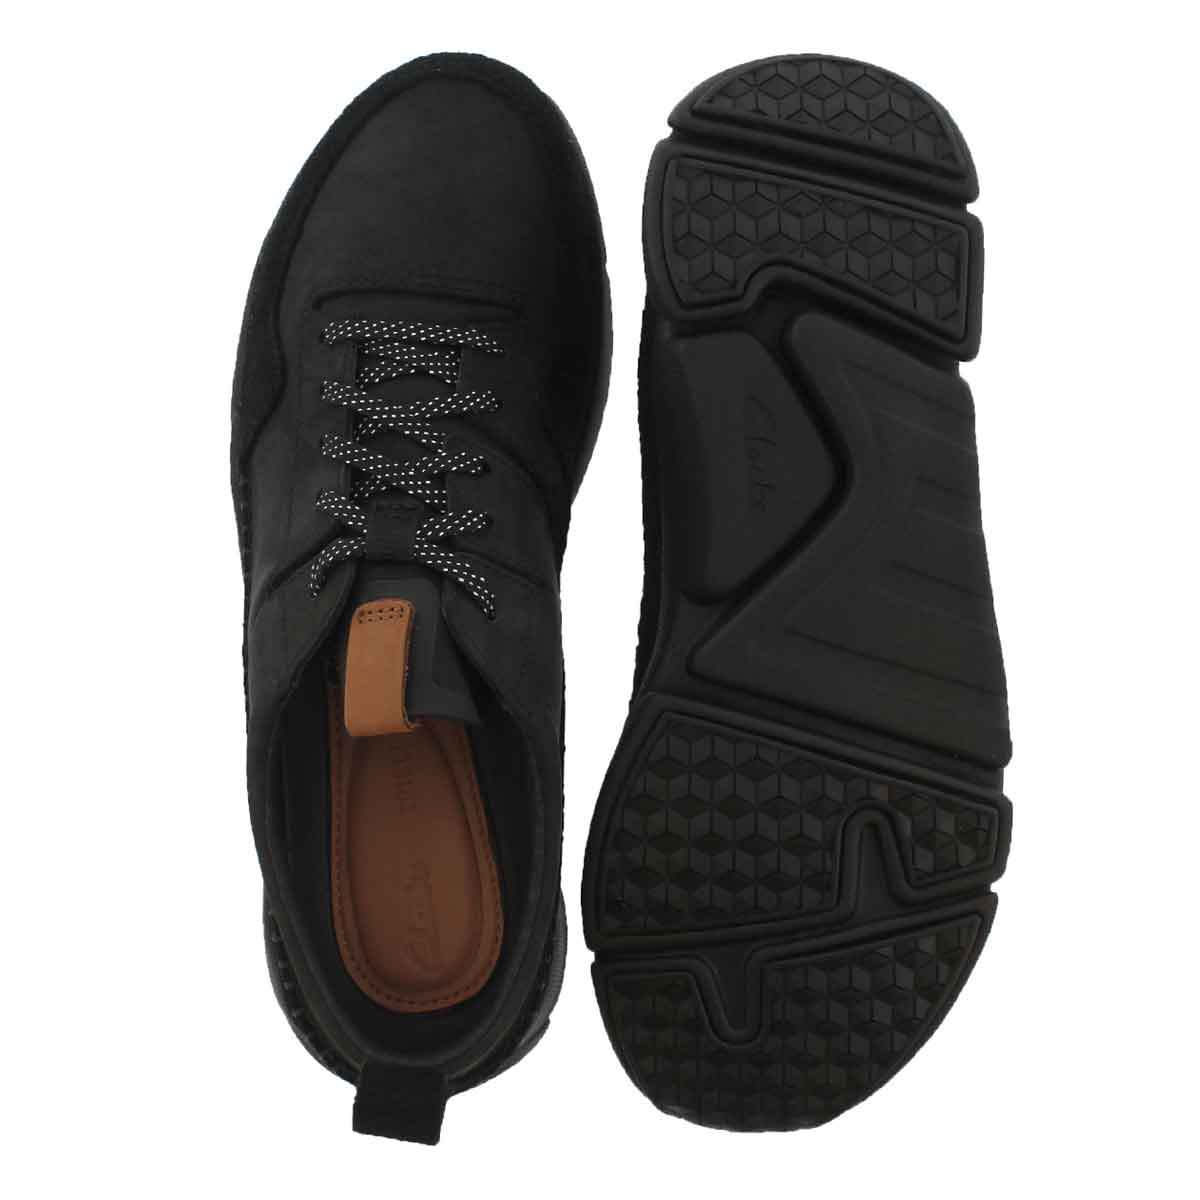 Mns Tri Active Run blk lace up sneaker